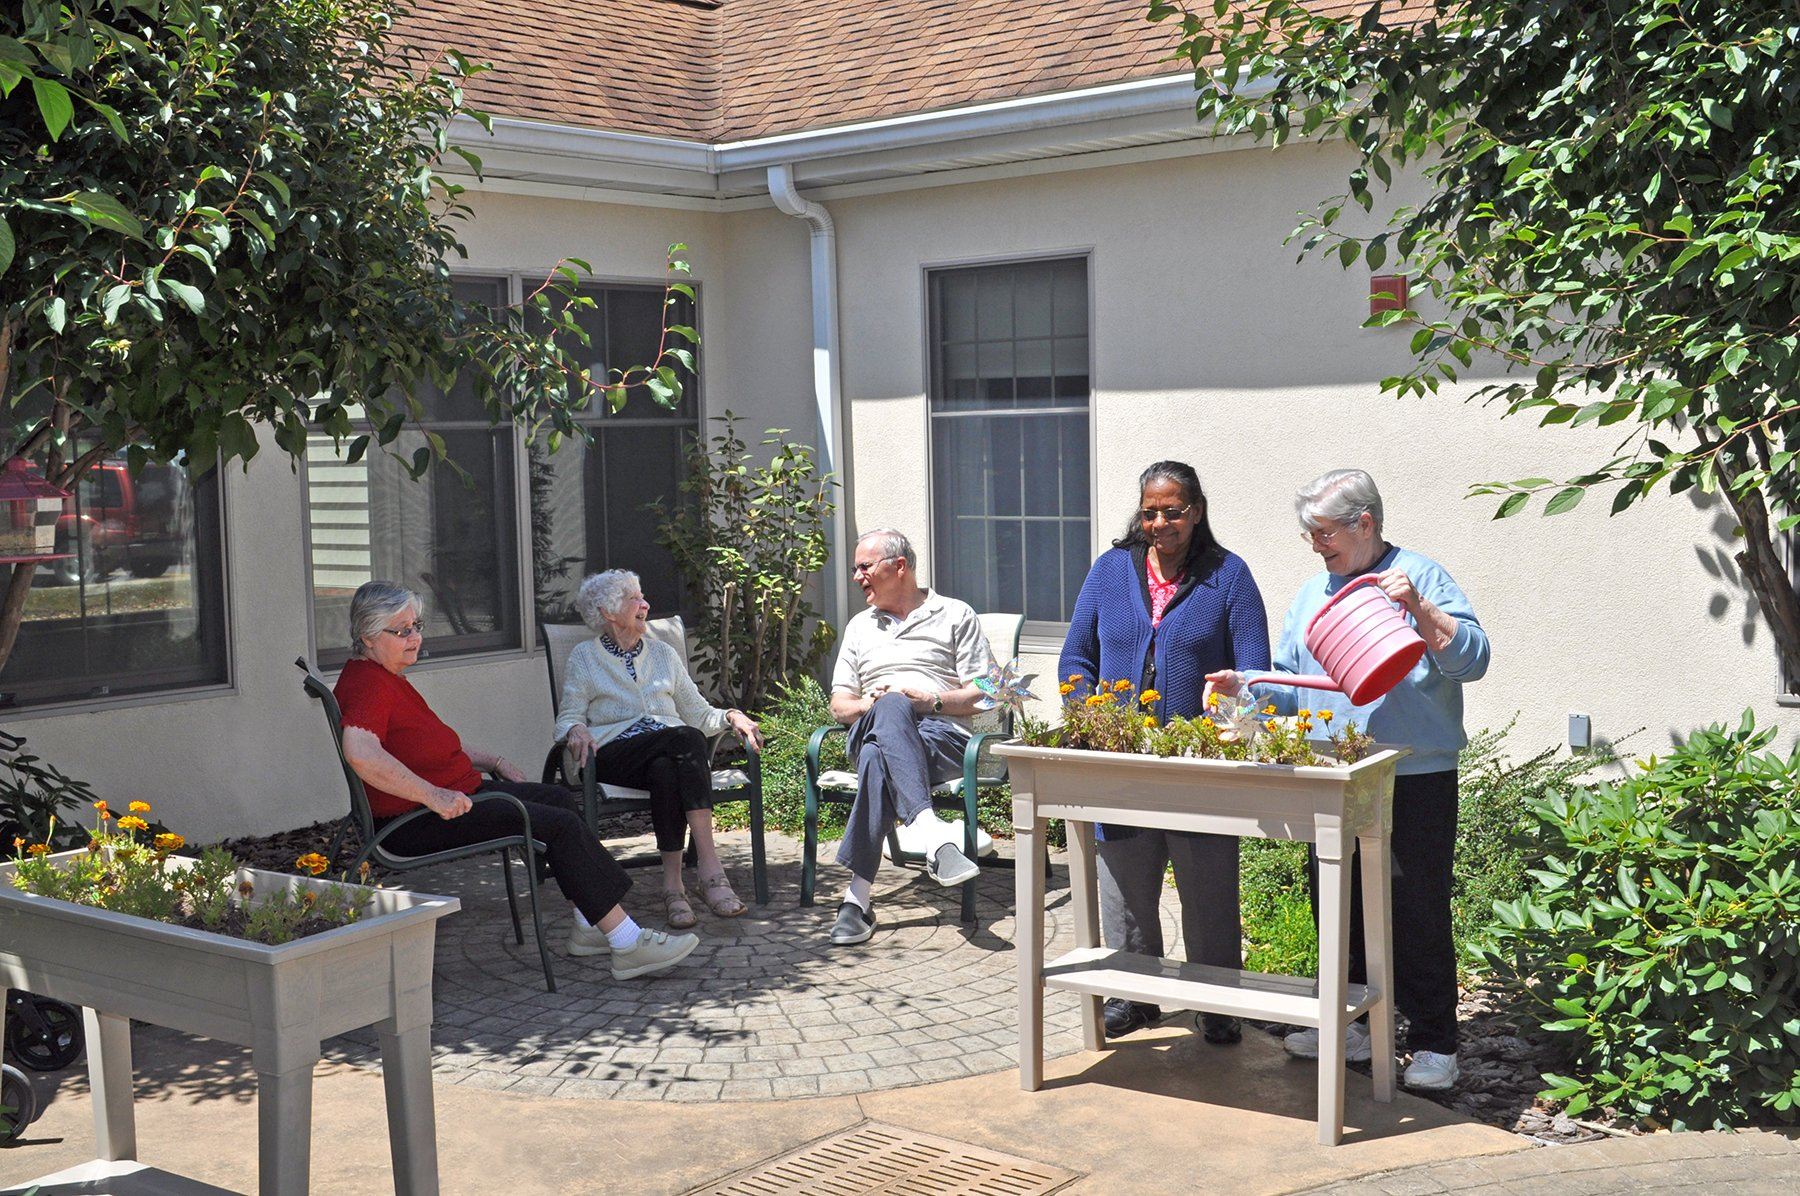 Memory Support Courtyard with residents